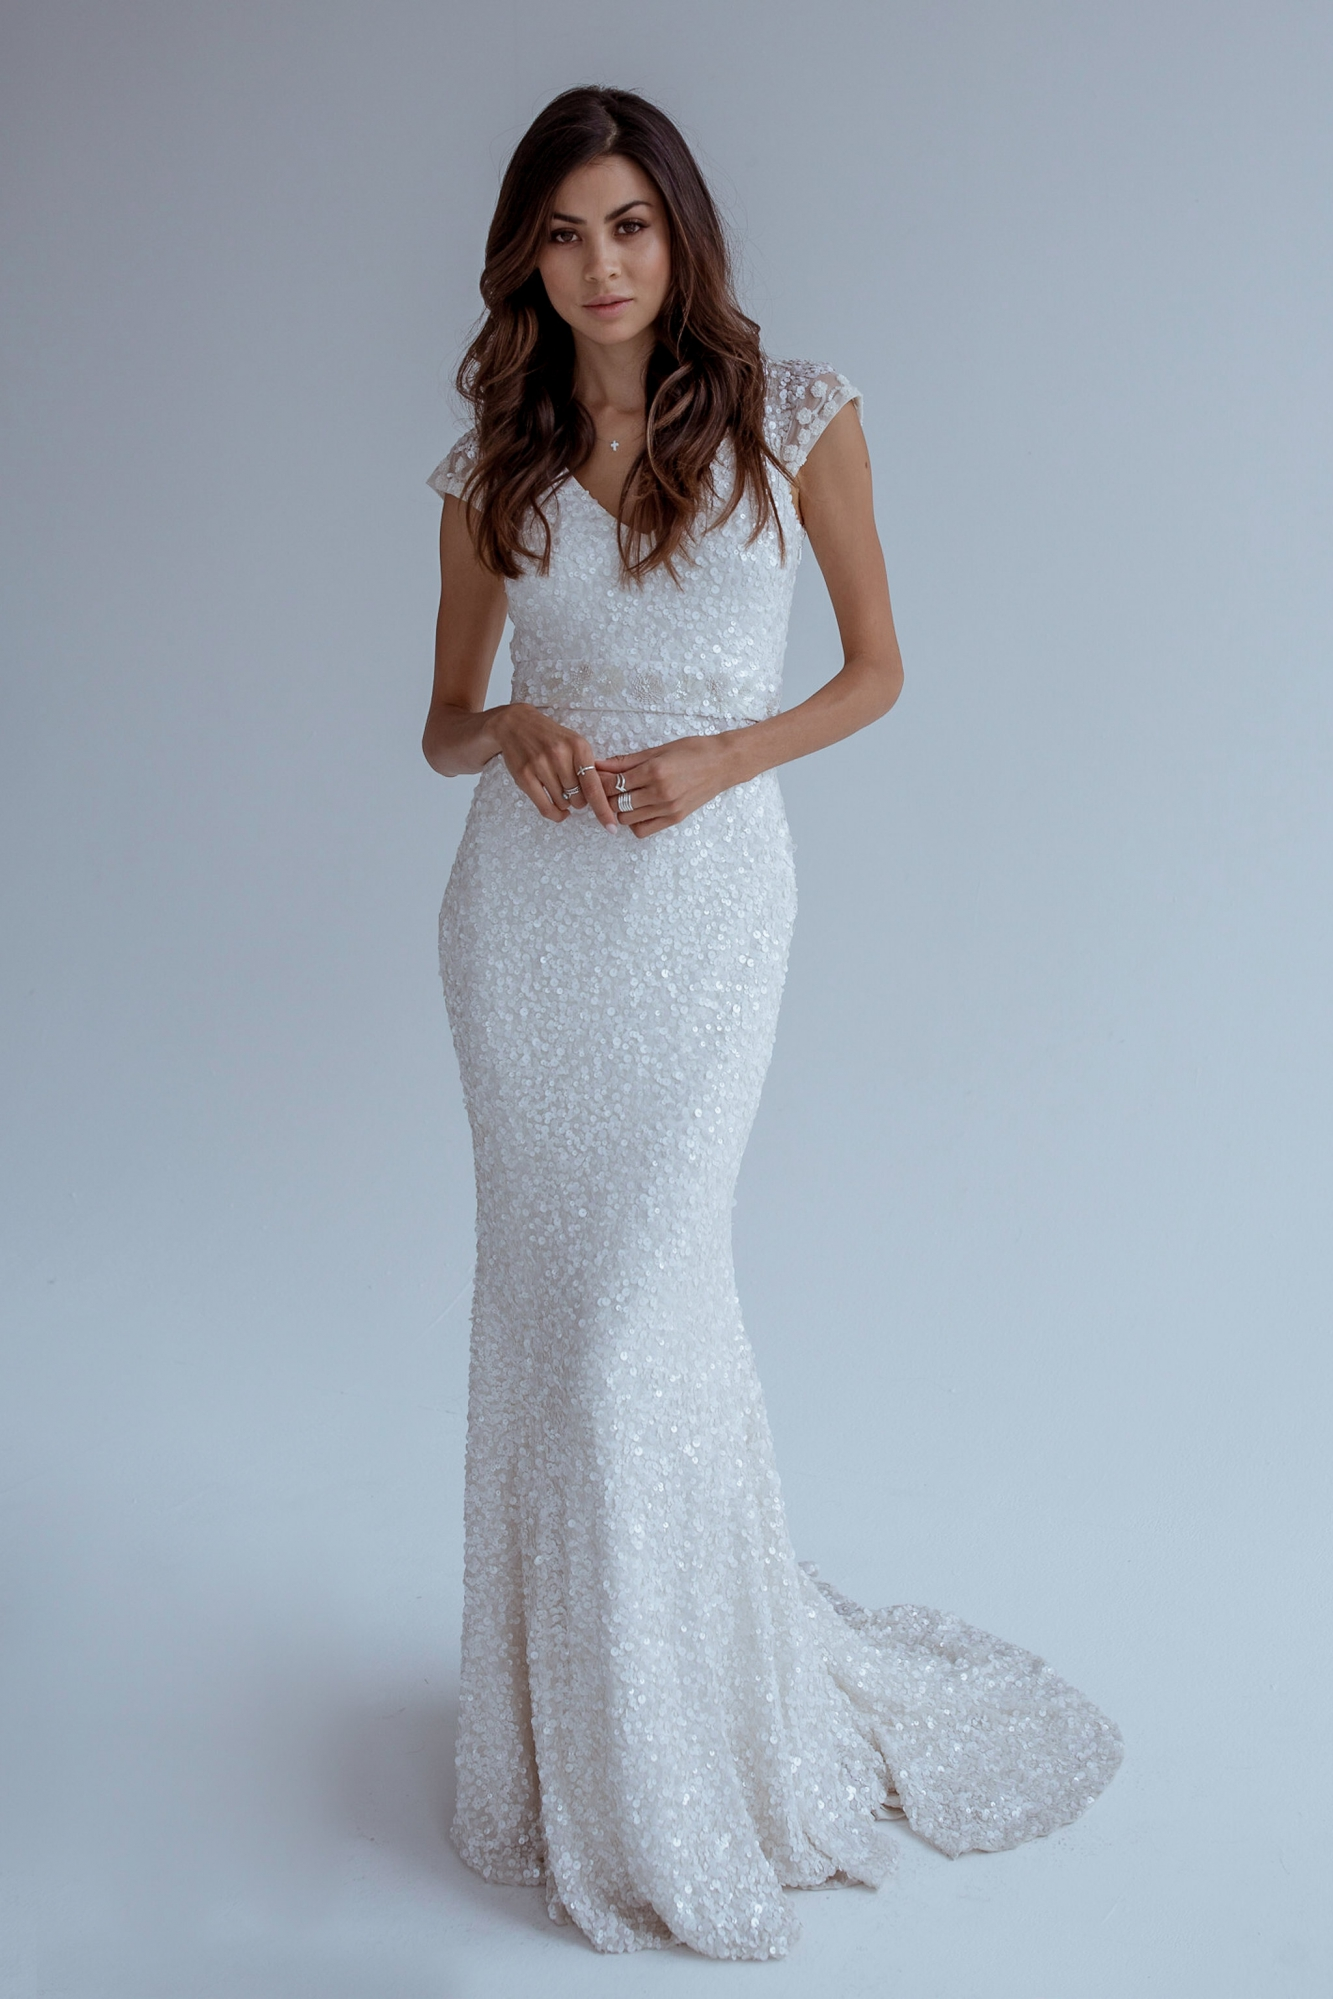 21 Exquisite Wedding Dresses with Cap Sleeves | weddingsonline